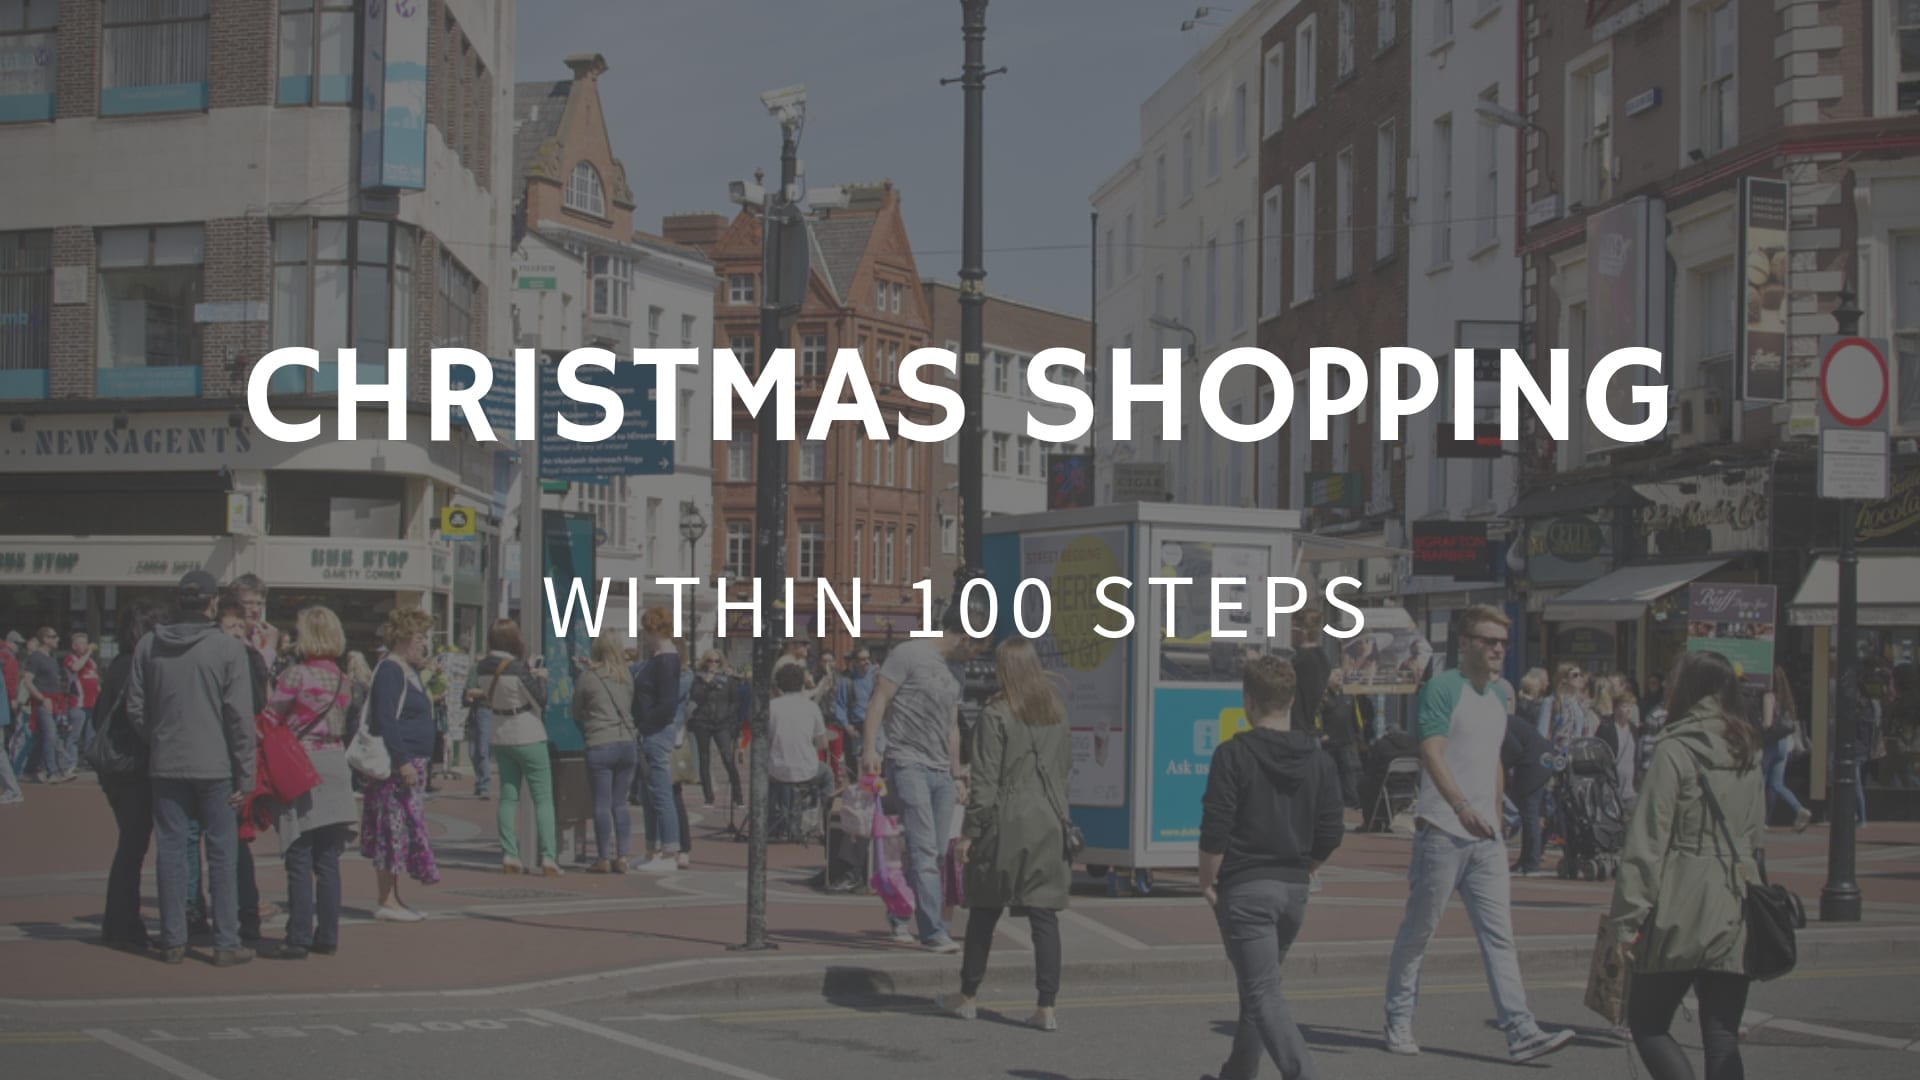 Christmas shopping within 100 steps